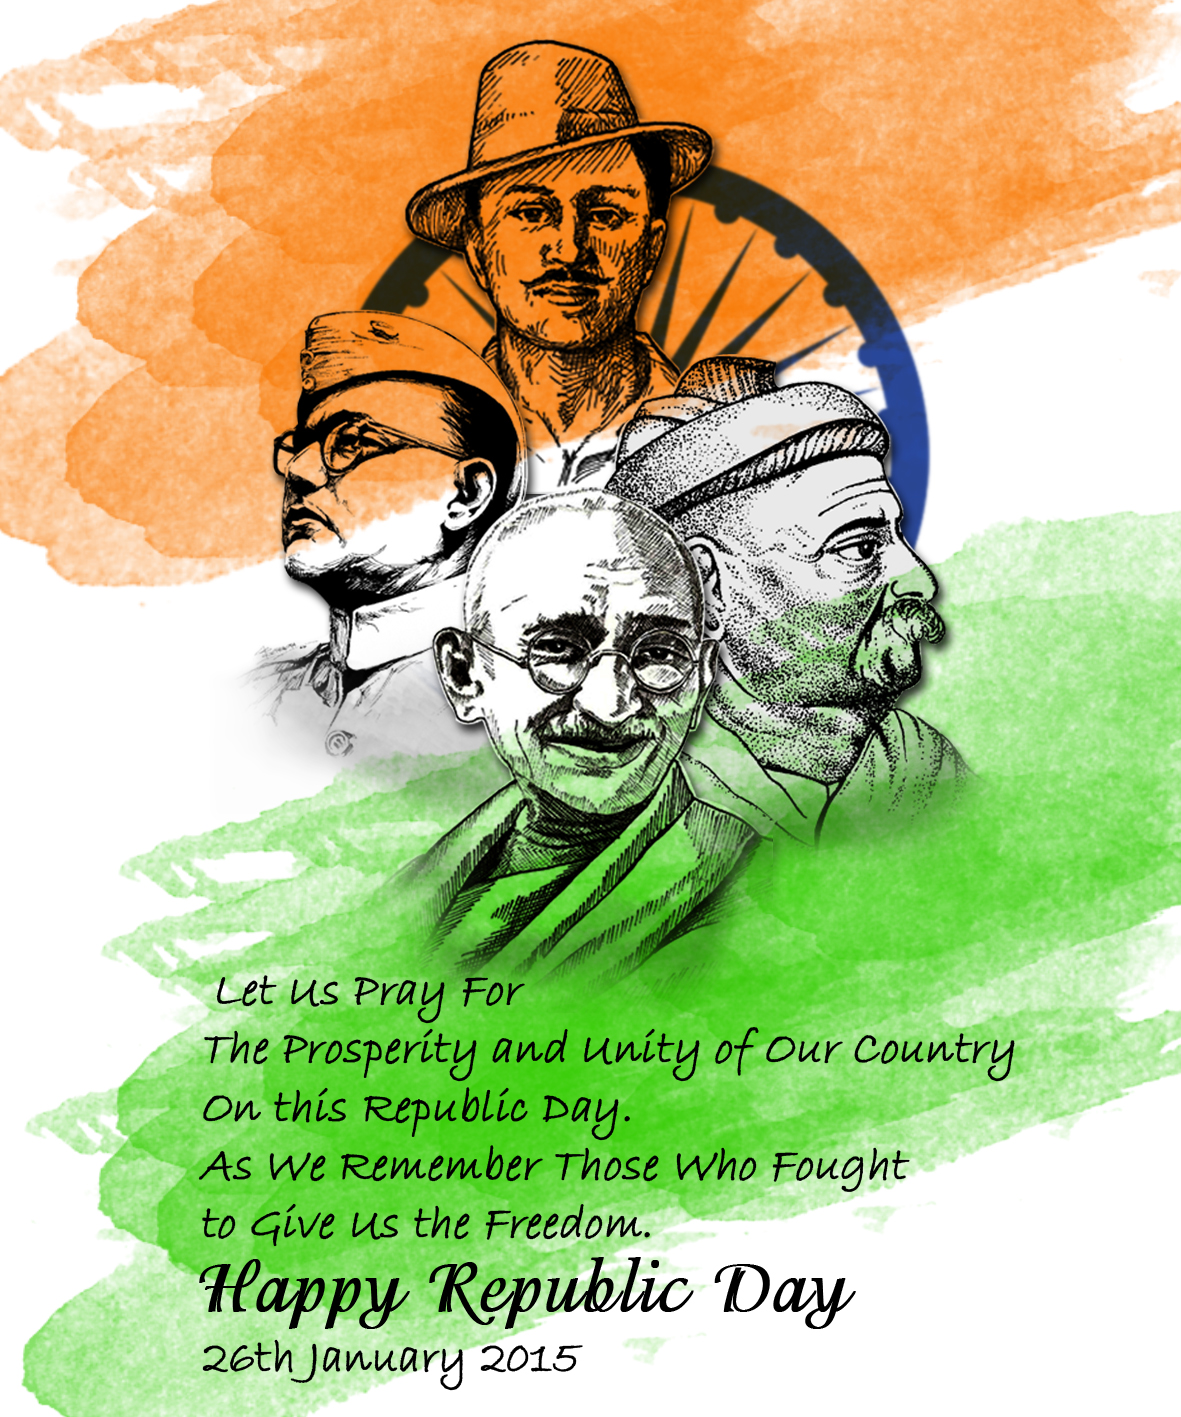 Happy Republic Day Folks! Lets build a strong and learned Nation!